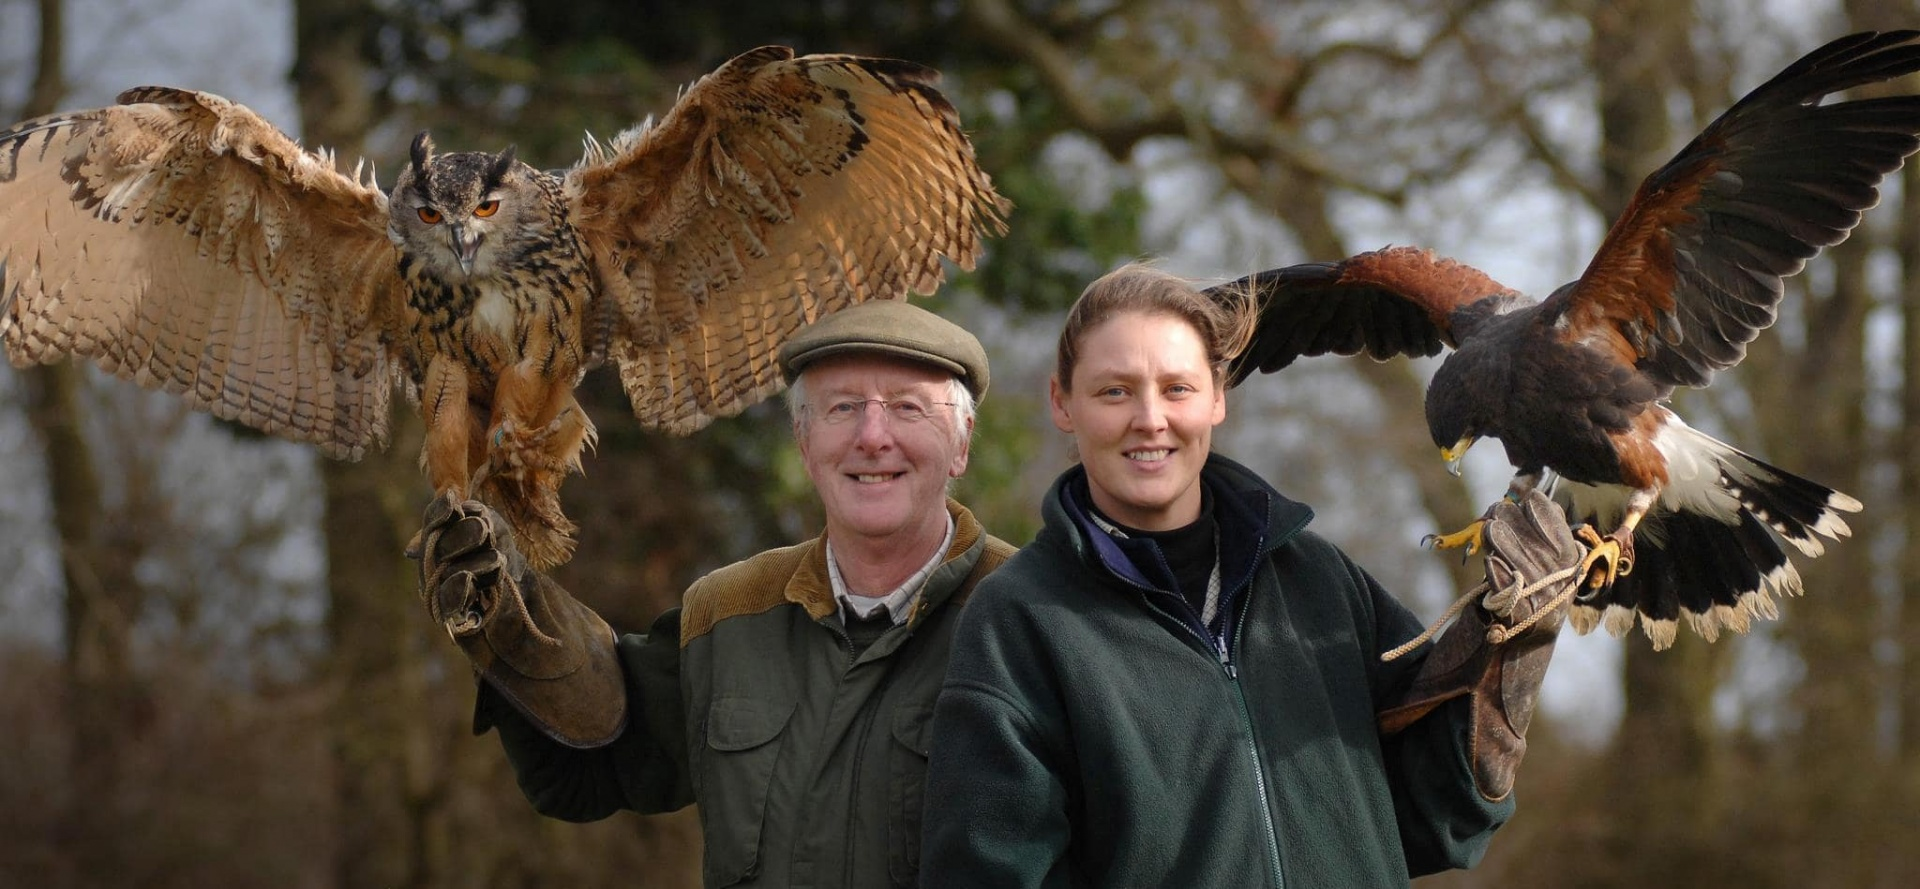 Full Day Falconry Experience Kids - Warwickshire-2